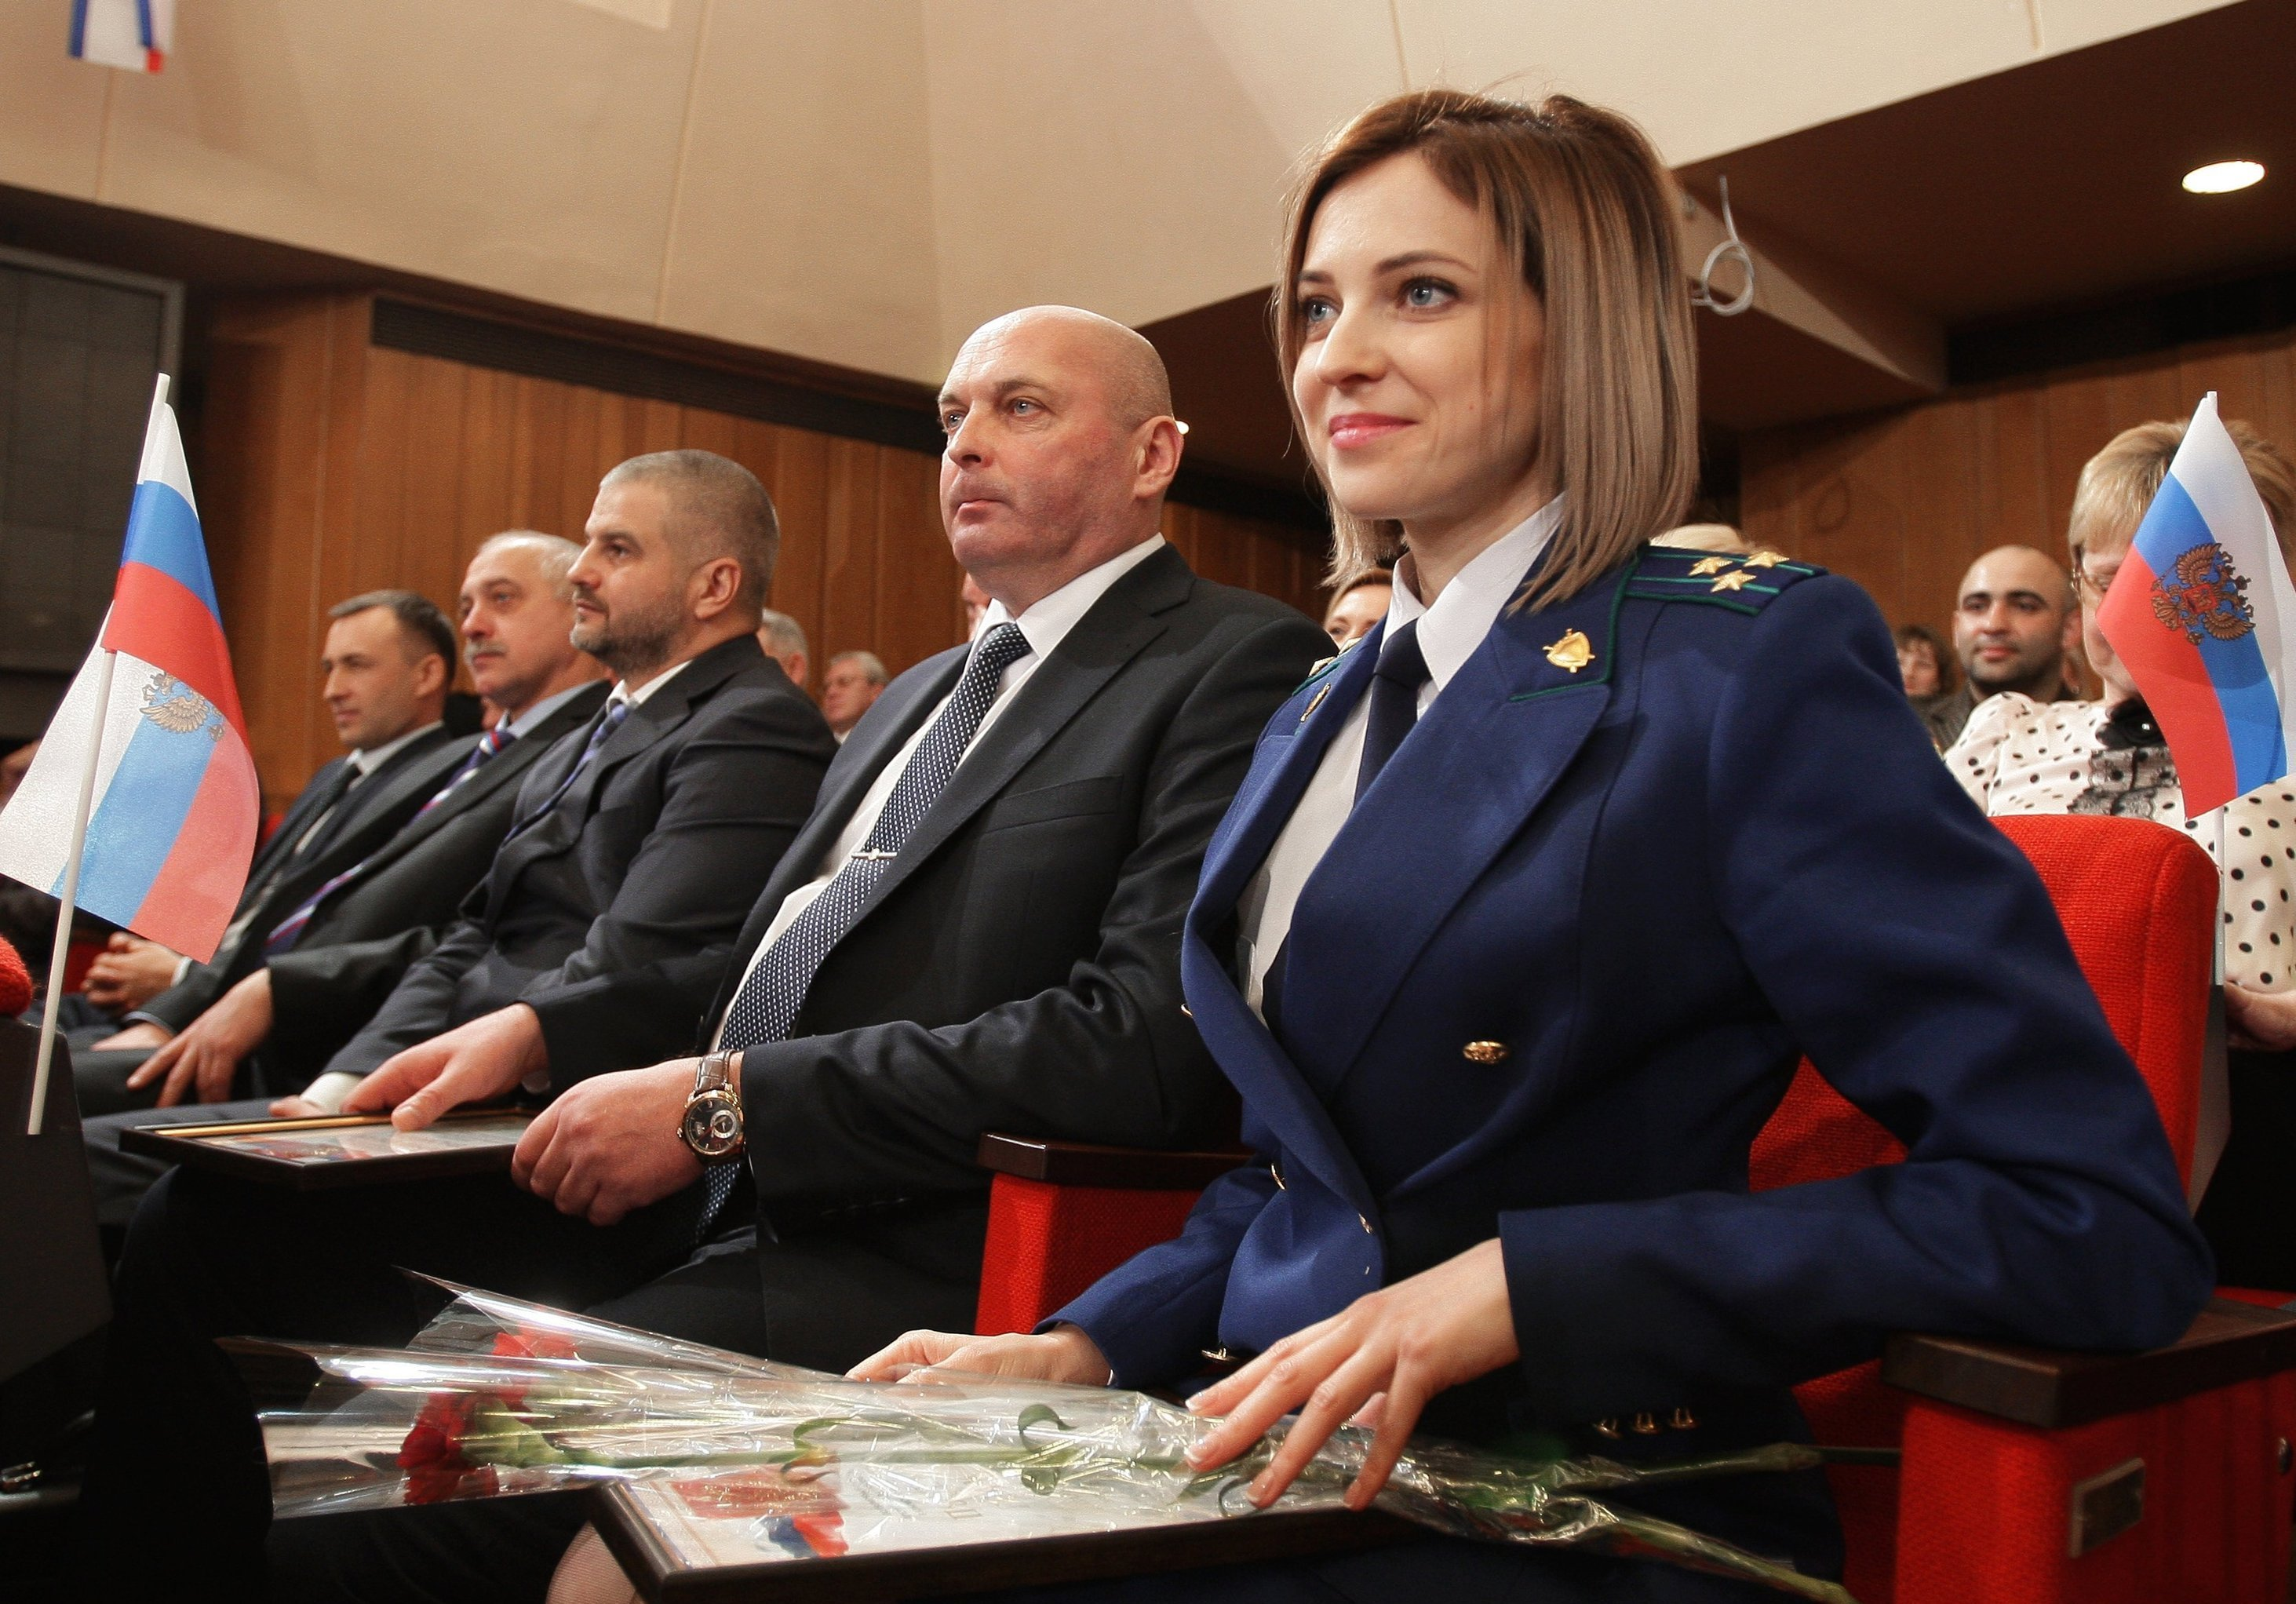 Crimean Prosecutor Natalya Poklonskaya at the meeting of deputies of the State Council of the Republic of Crimea which is dedicated to the one-year anniversary of the Crimean Spring in Simferopol